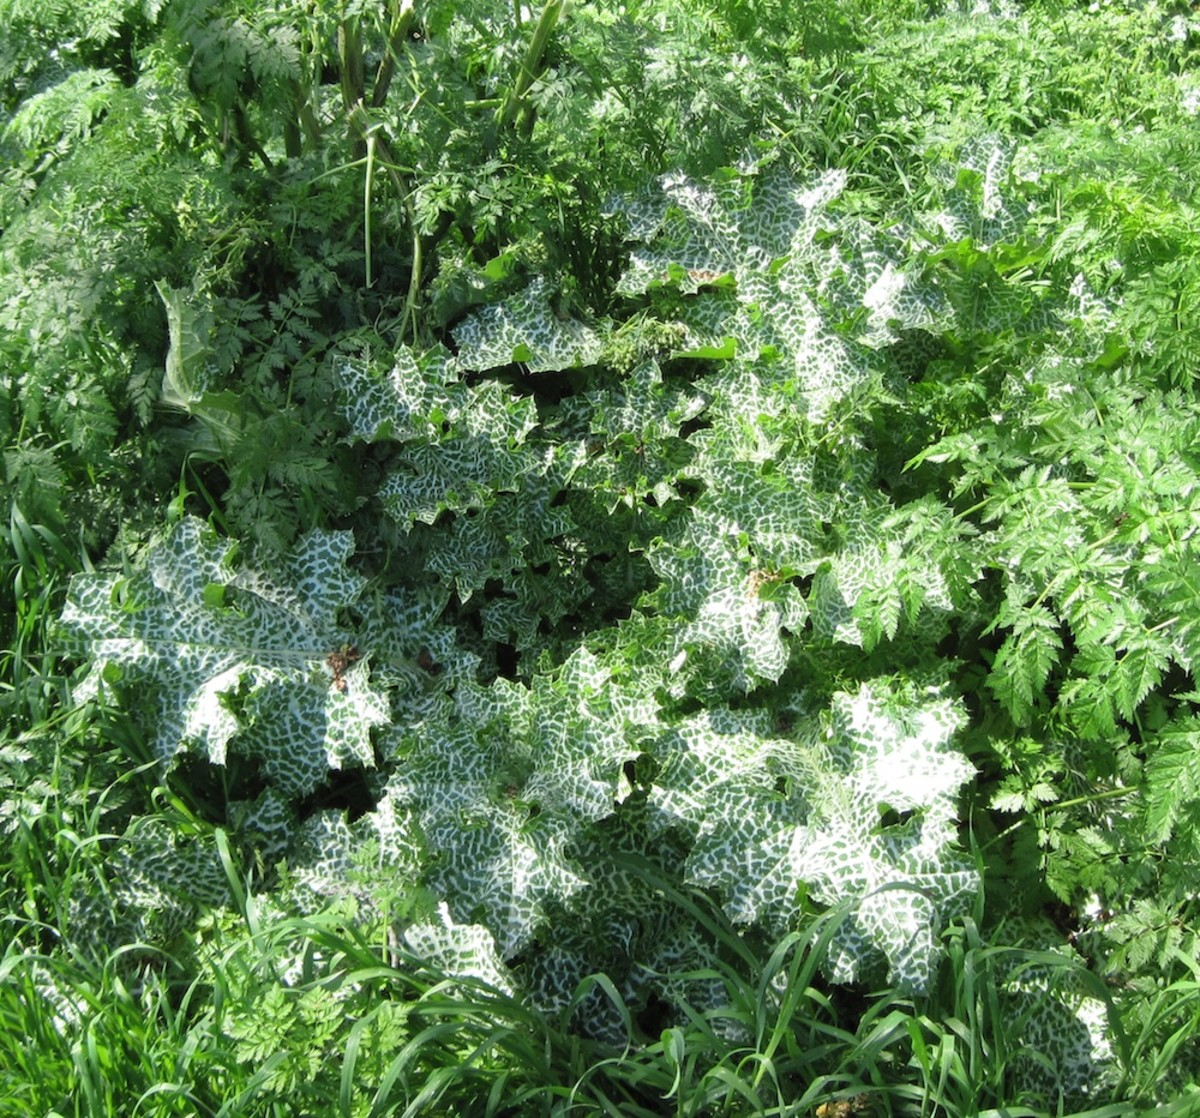 Milk thistle in a patch of poison hemlock.